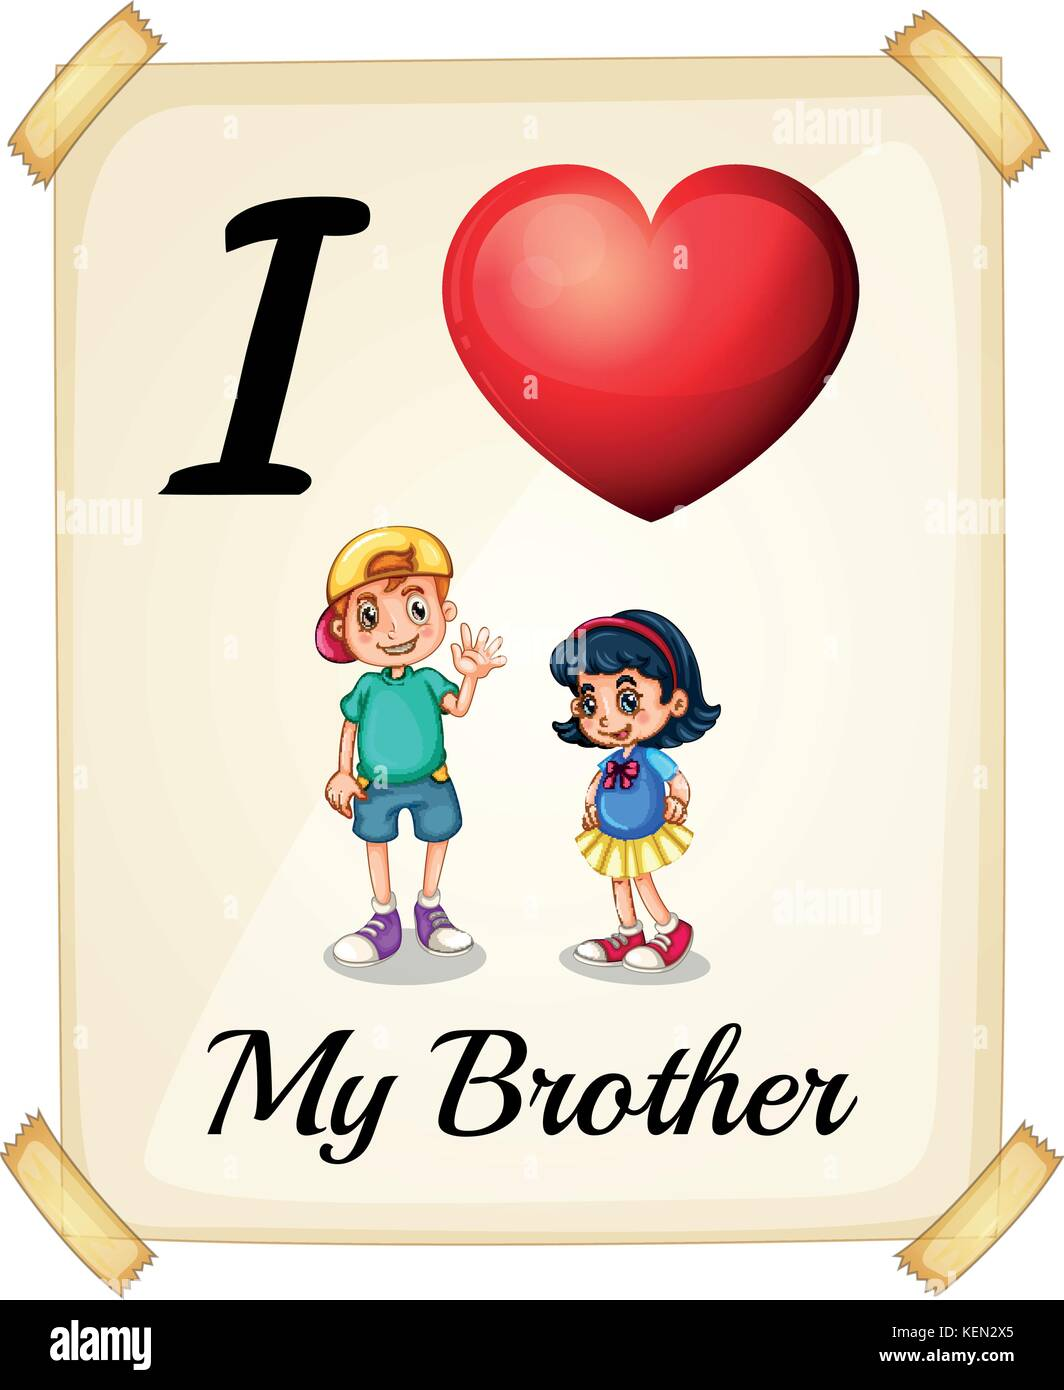 Love my brother